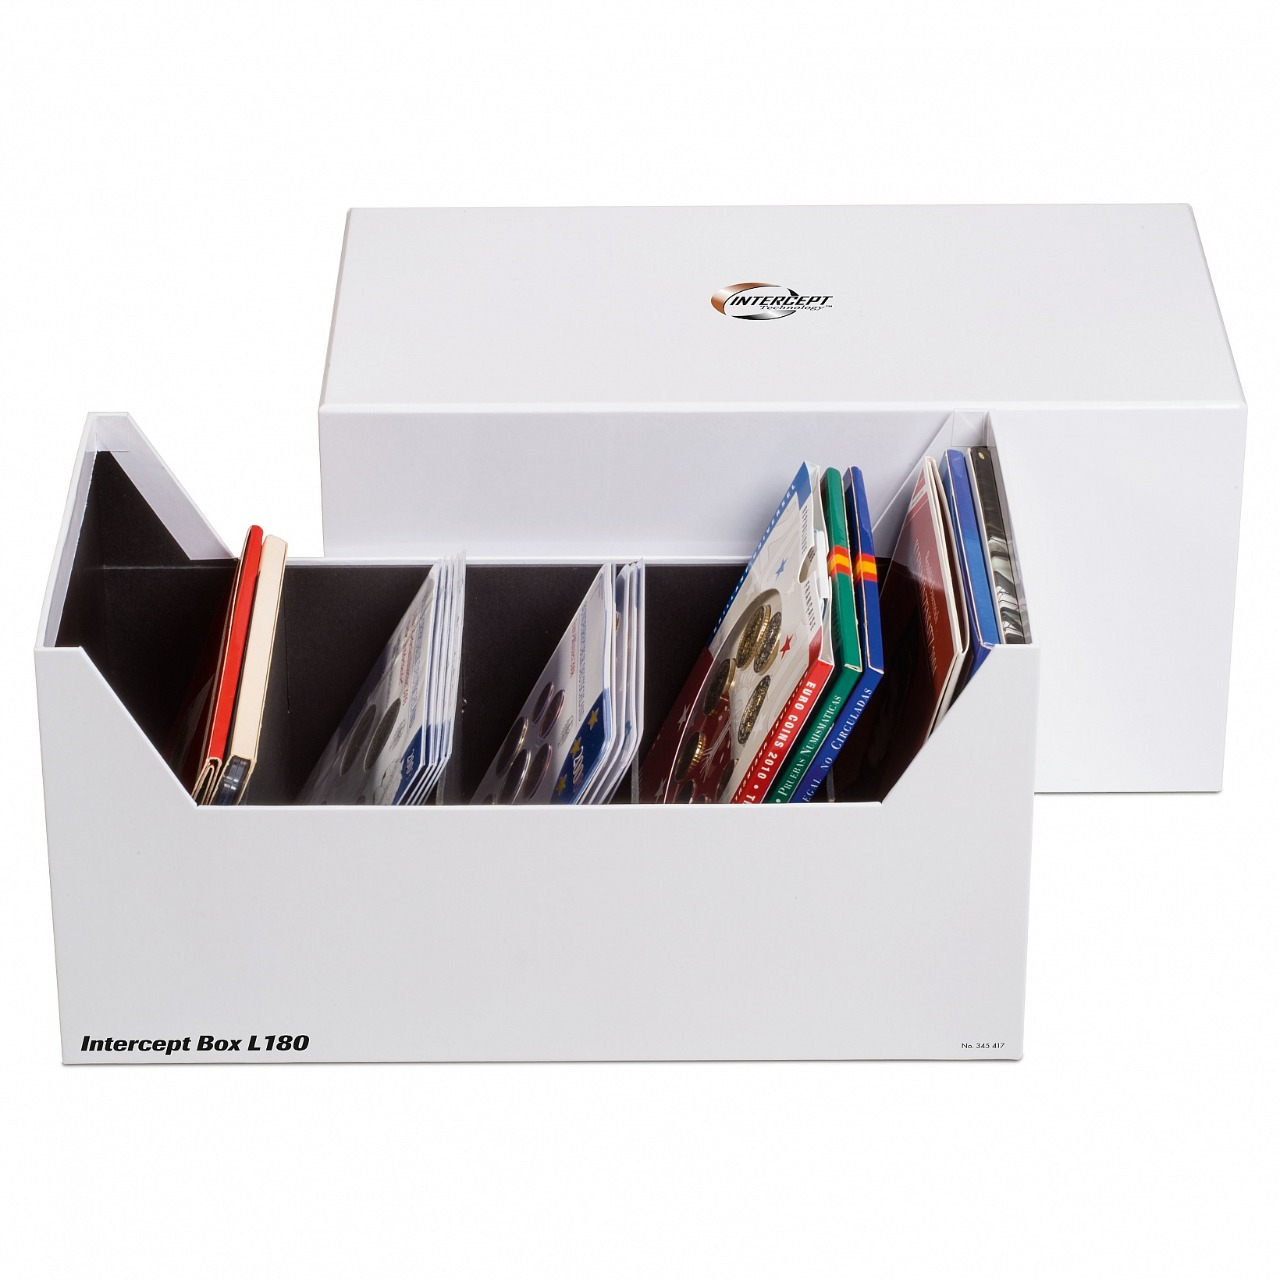 Lighthouse - Box intercept L 180 for sets of coins, letters, documents up to 180 X 160 mm